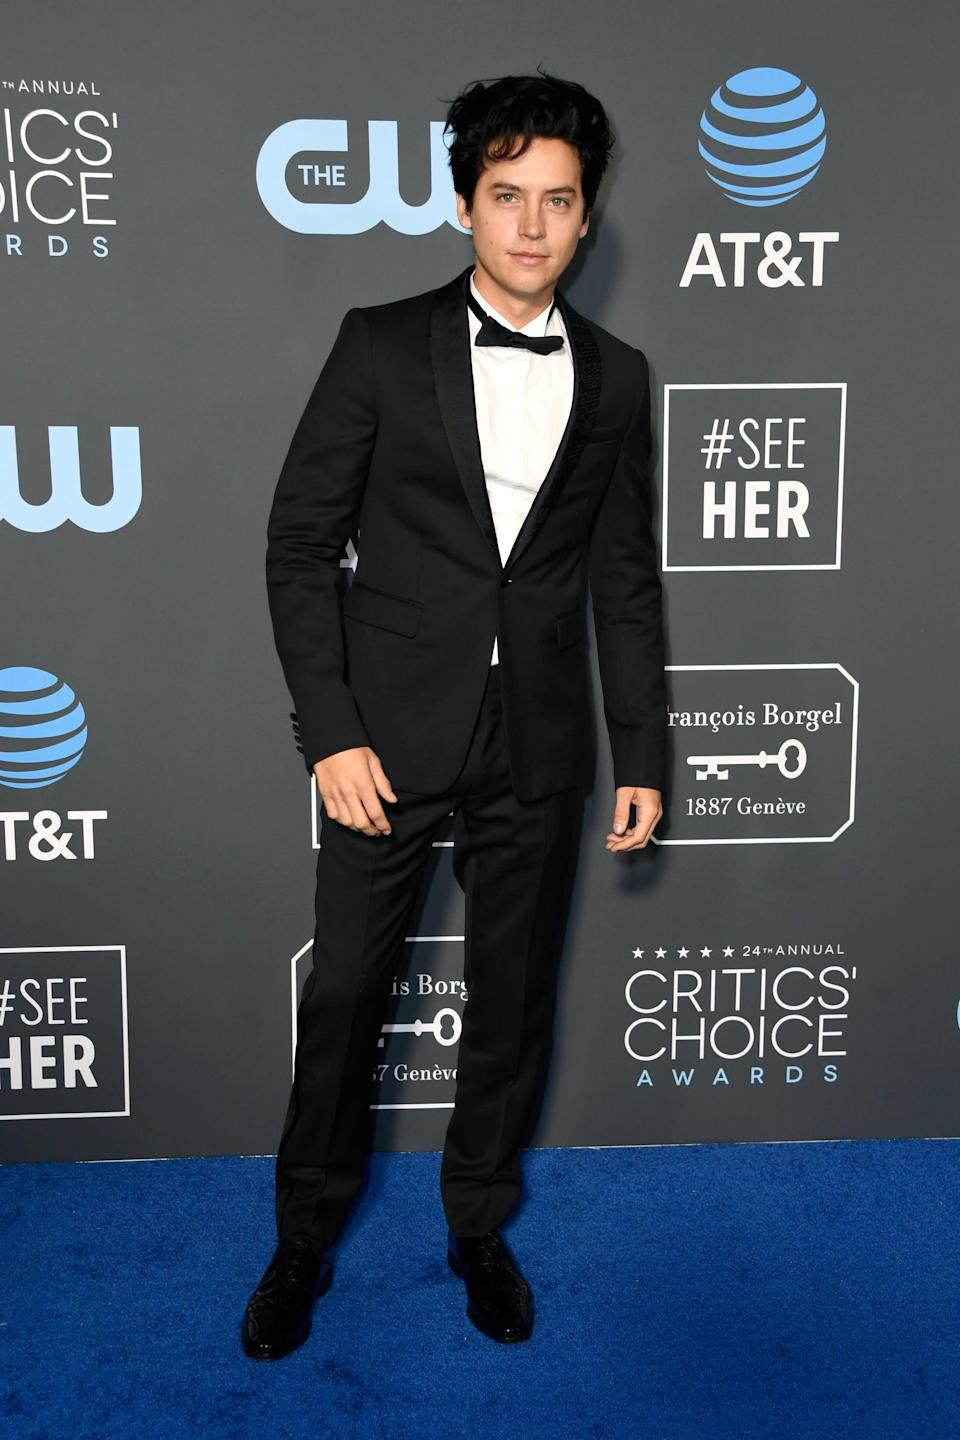 <p>Cole Sprouse wearing a black suit and bowtie.</p>